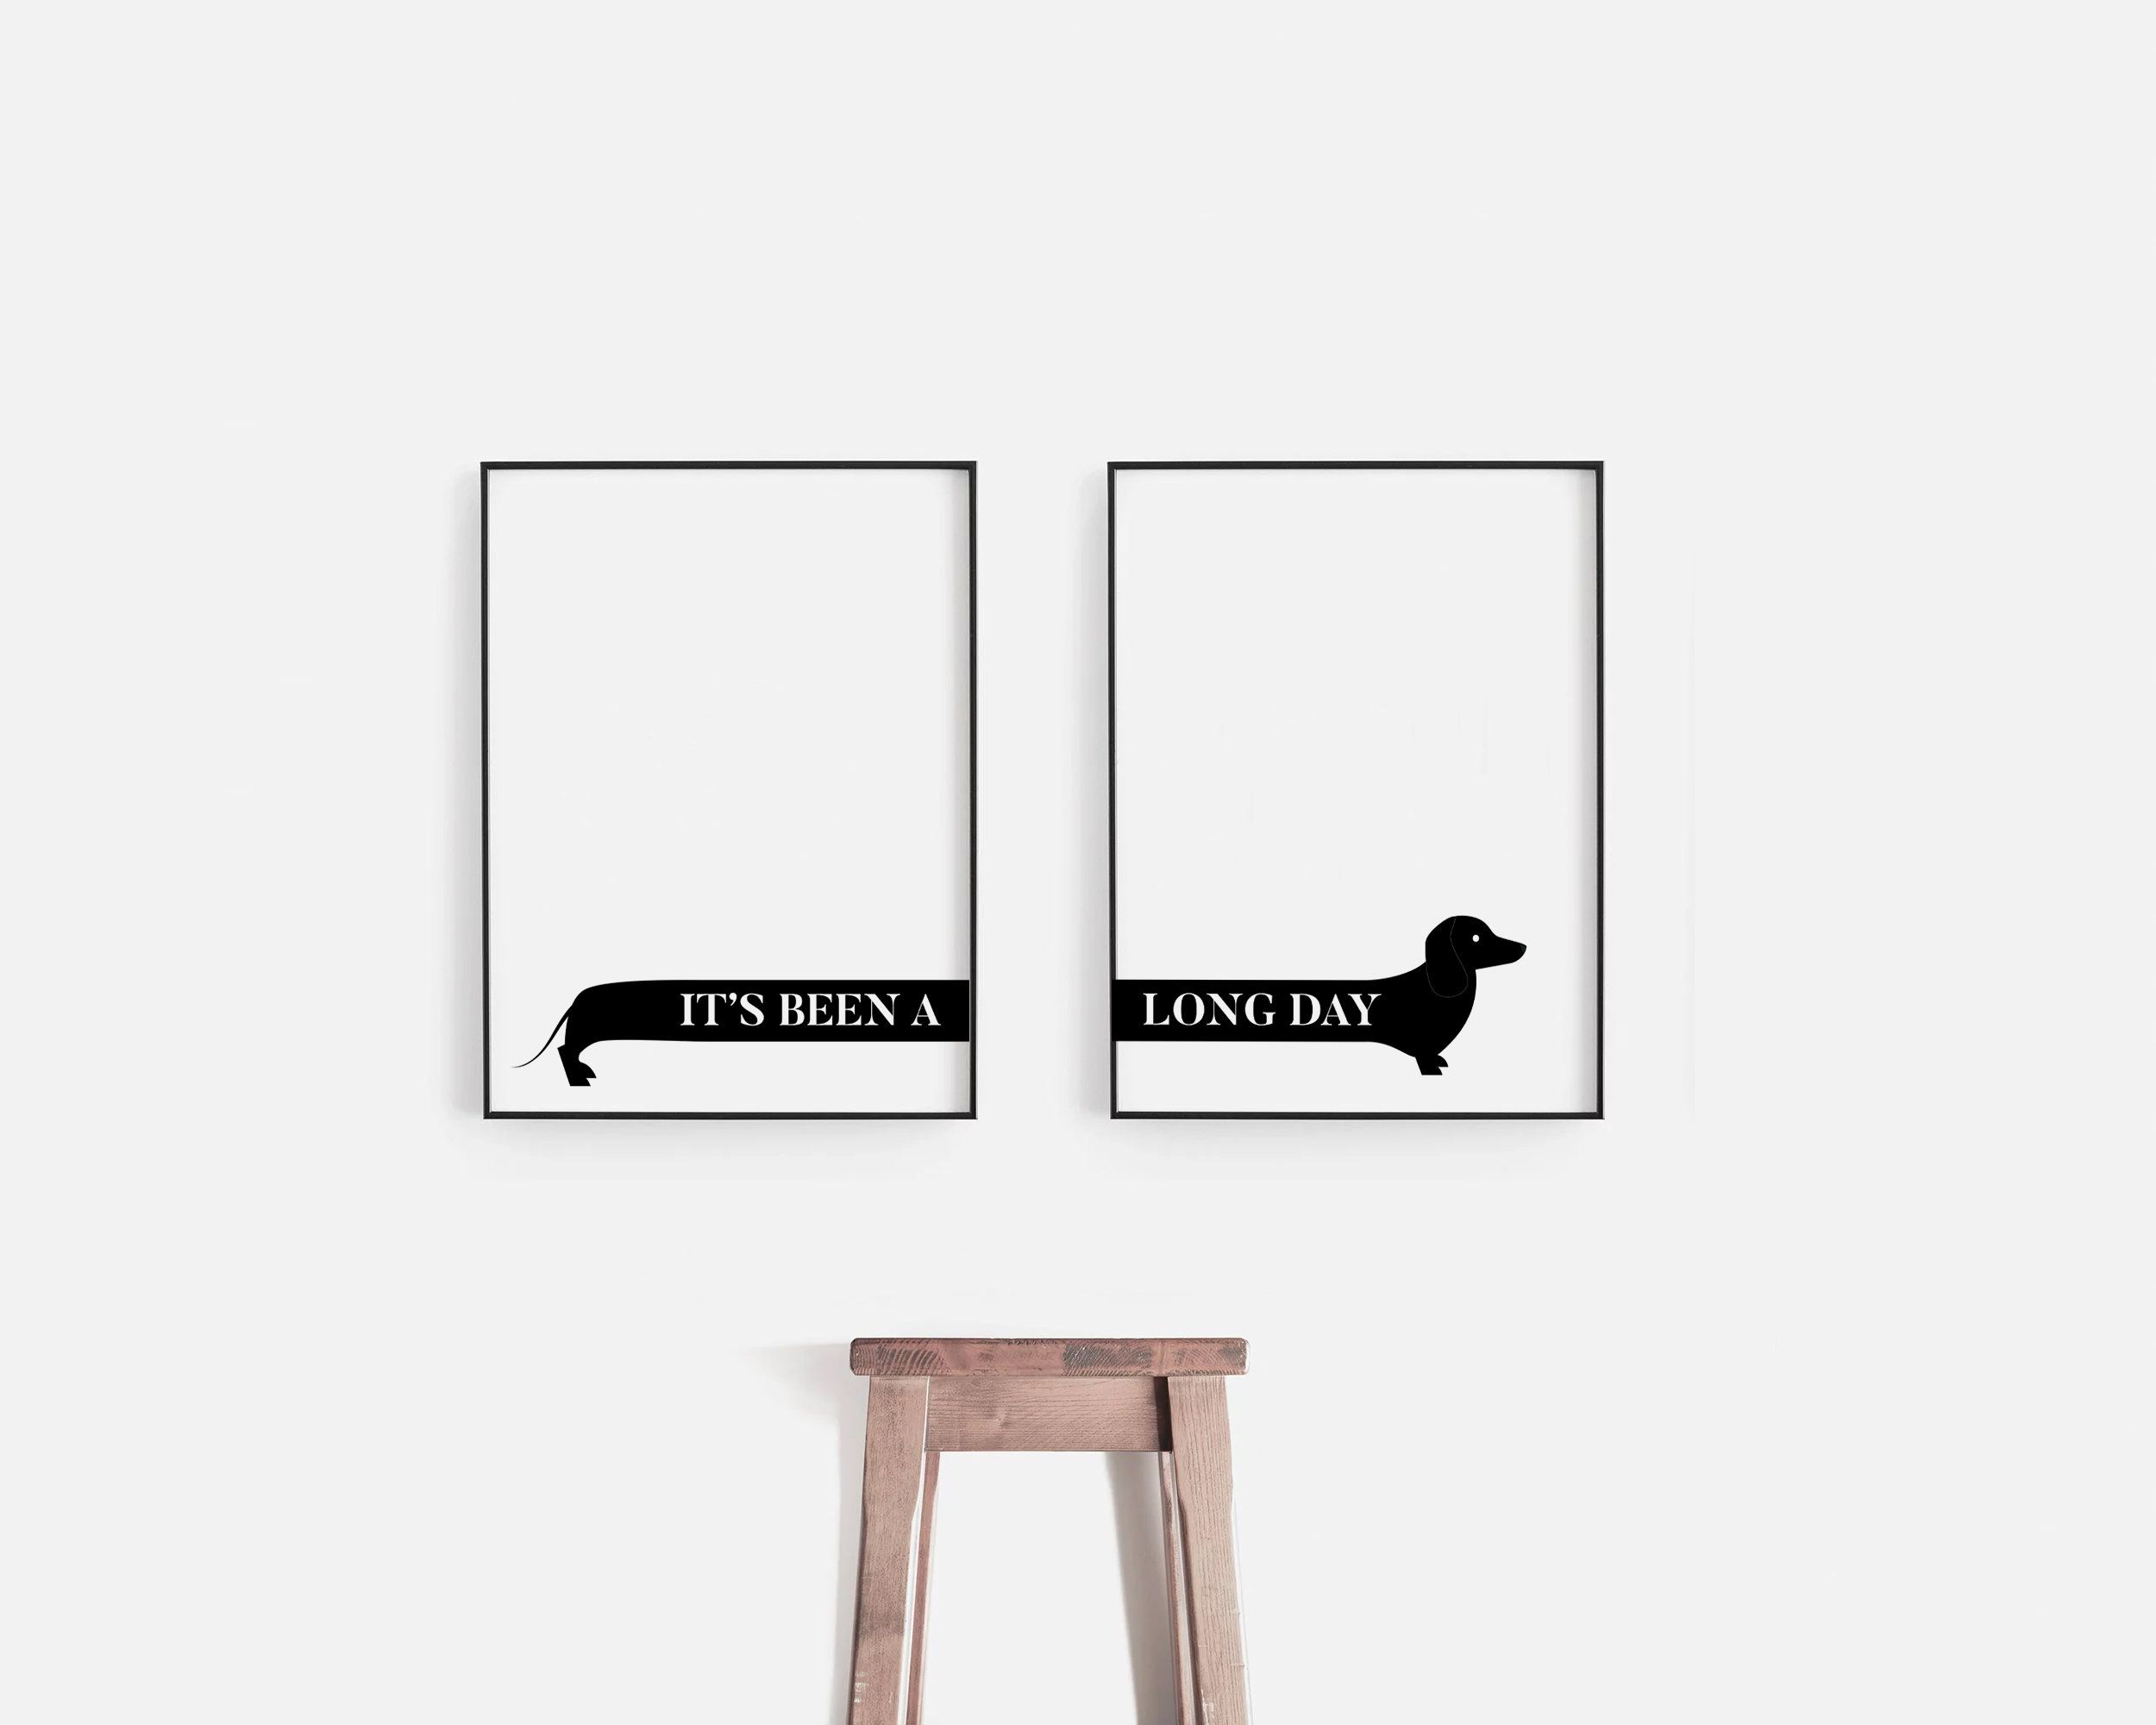 Sausage Dog Dachshund Its Been A Long Day Funny Gift Home Etsy Dachshund Wall Art Dachshund Decor Wall Art Dog Wall Art